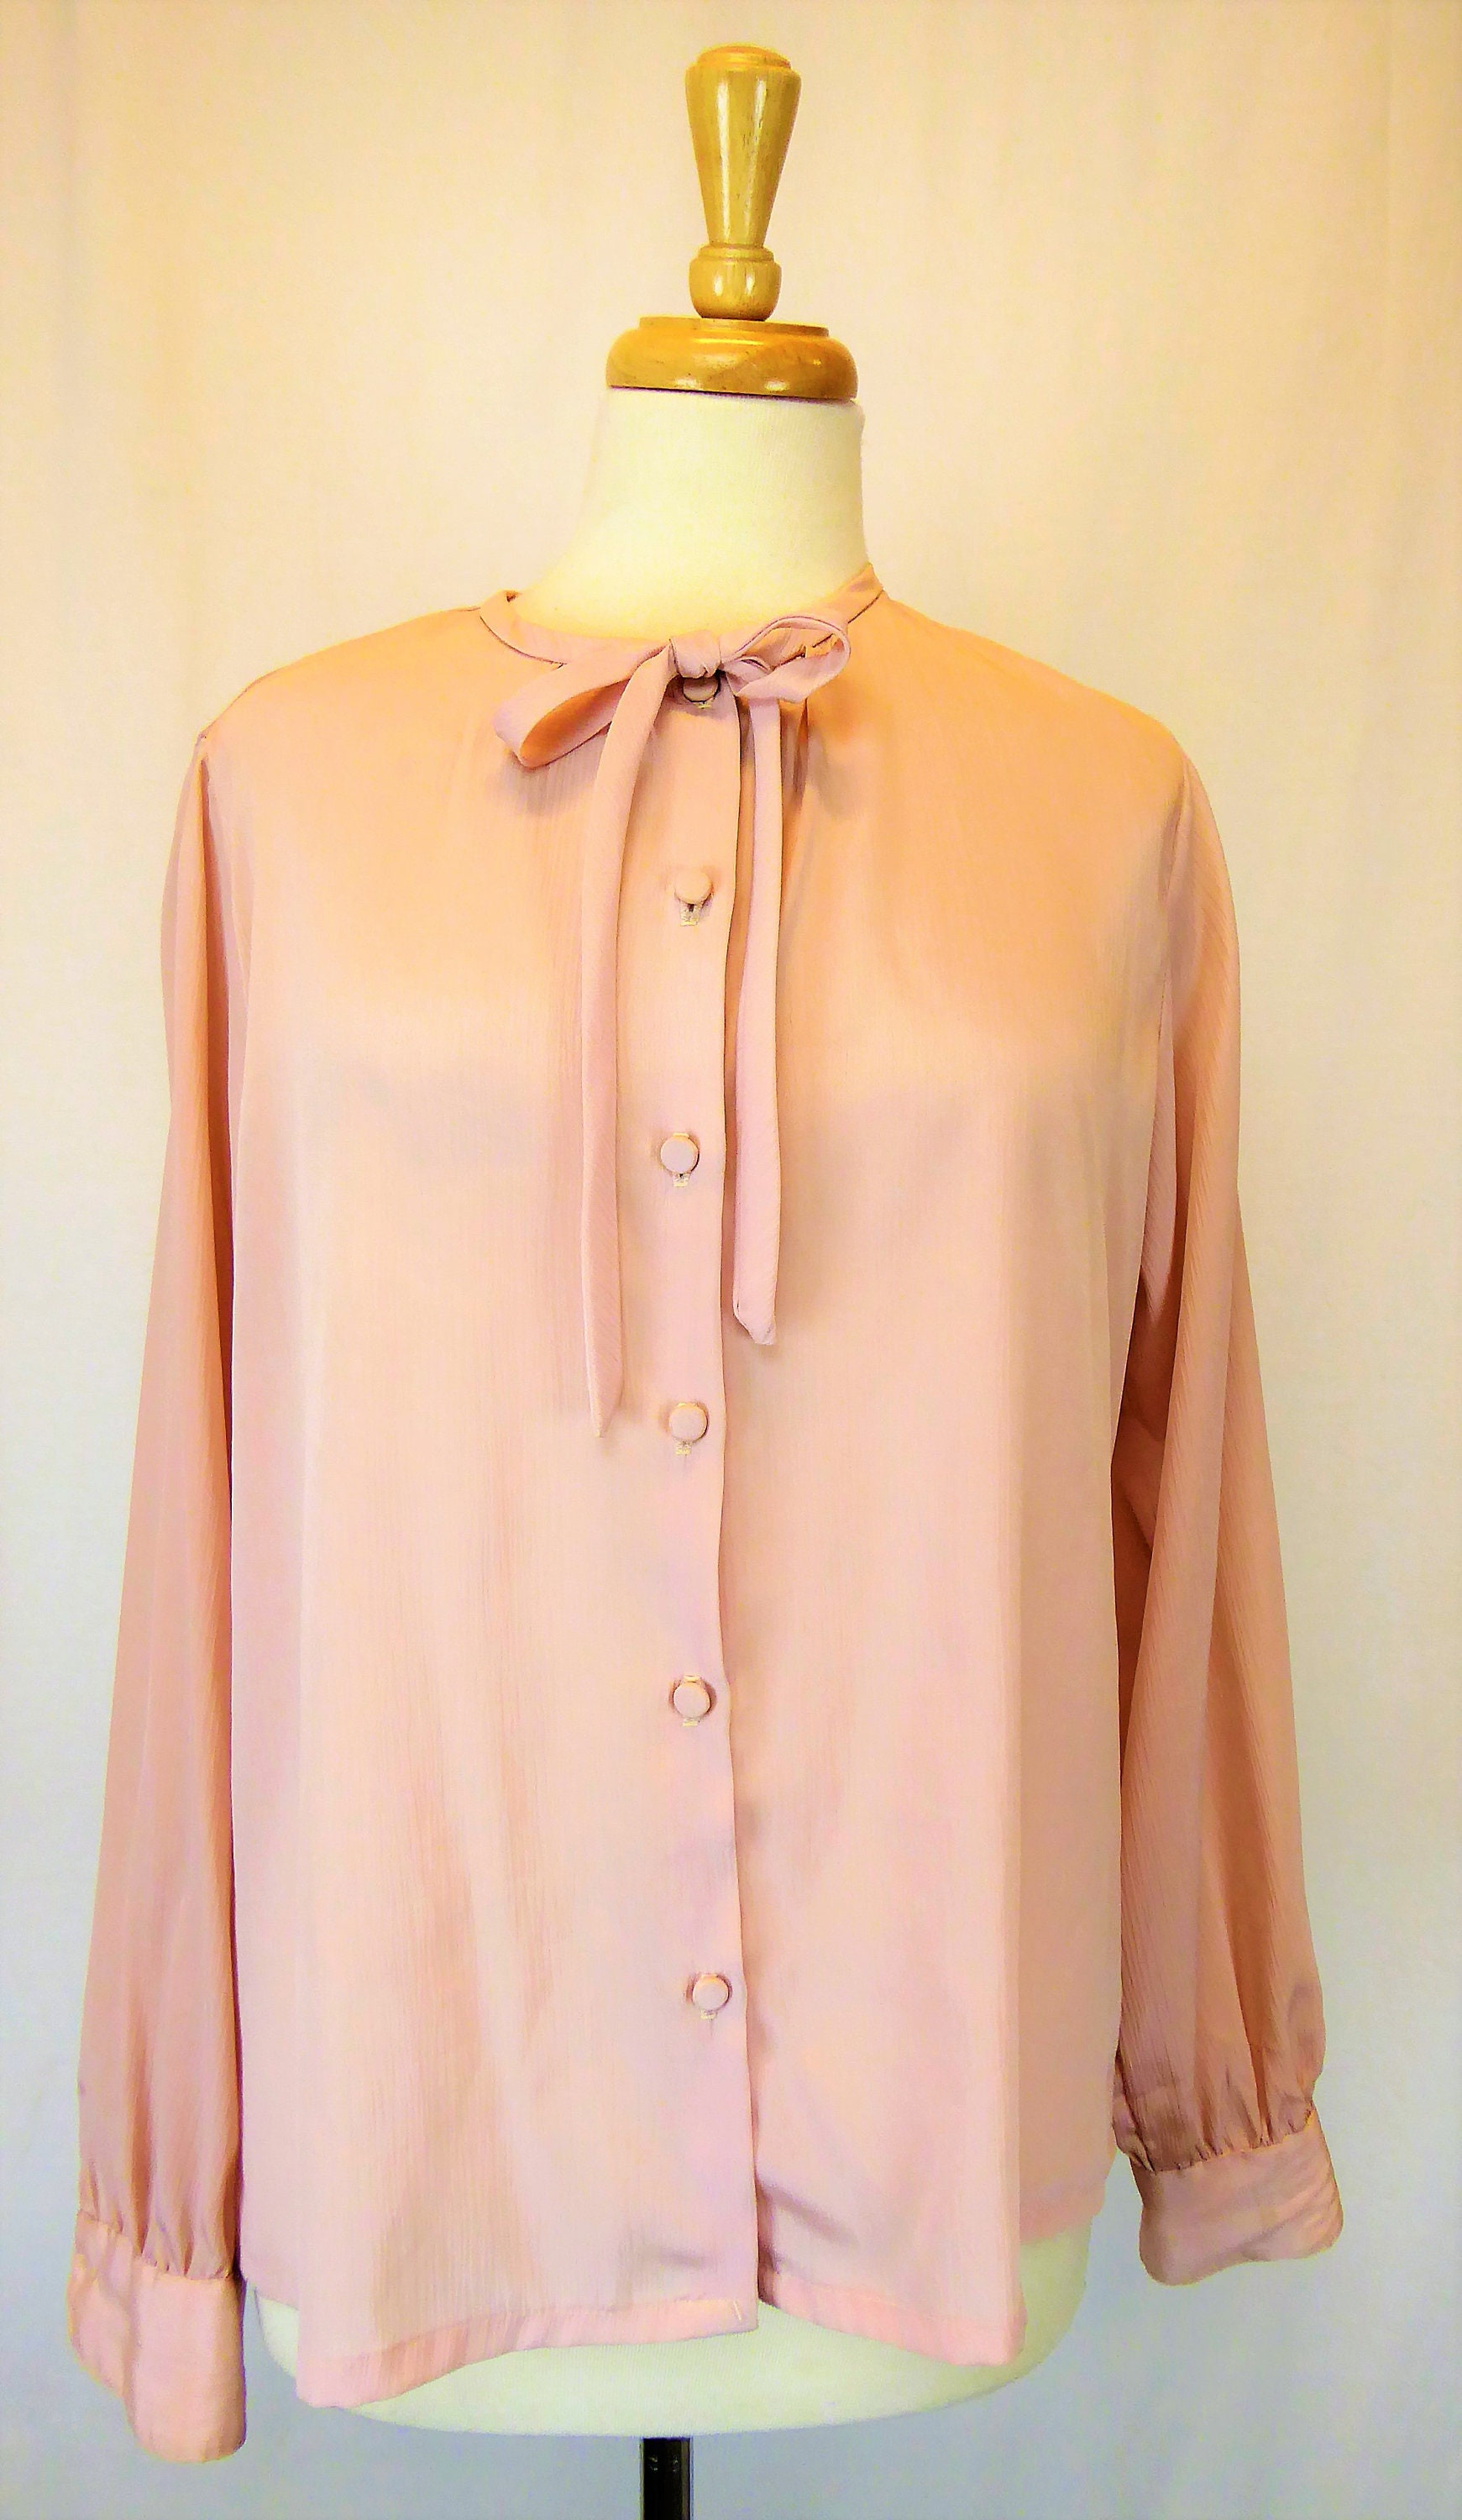 7081fdb1ac4 Helen Fabrikant New York Vintage Sheer Pink Chiffon Blouse Women's Size 14,  Button Front Top w/ Bow